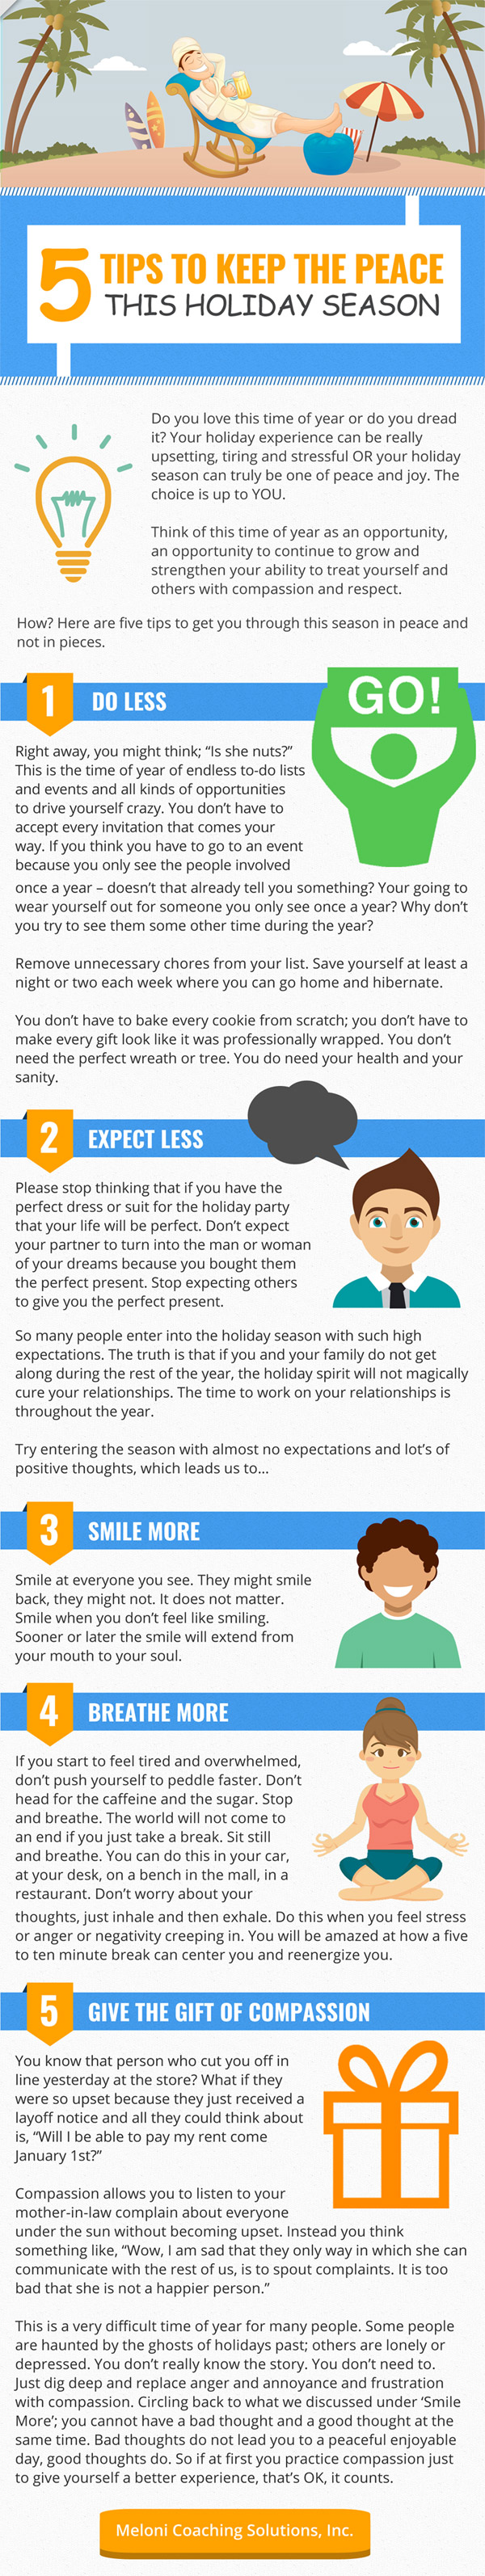 more-peace-and-less-stress_infographic